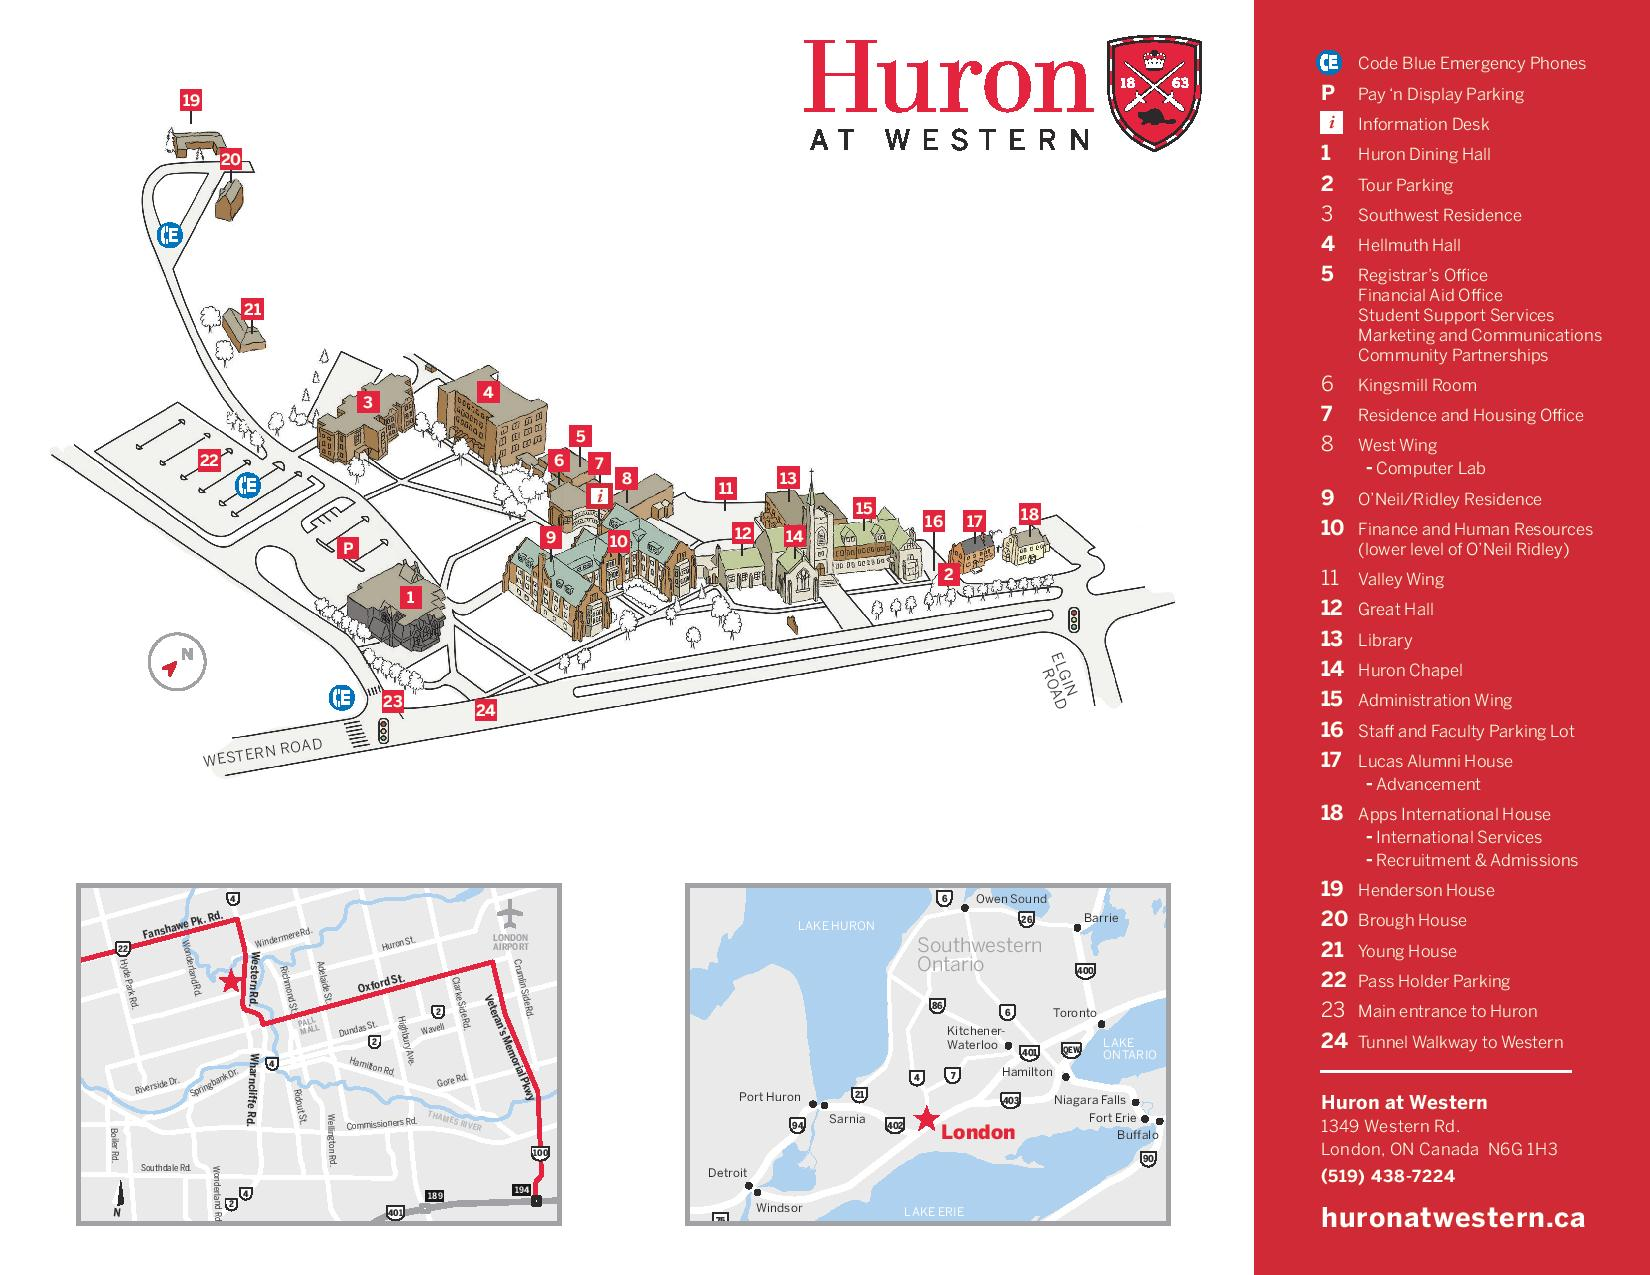 university of western ontario campus map Huron Campus Map Huron University university of western ontario campus map